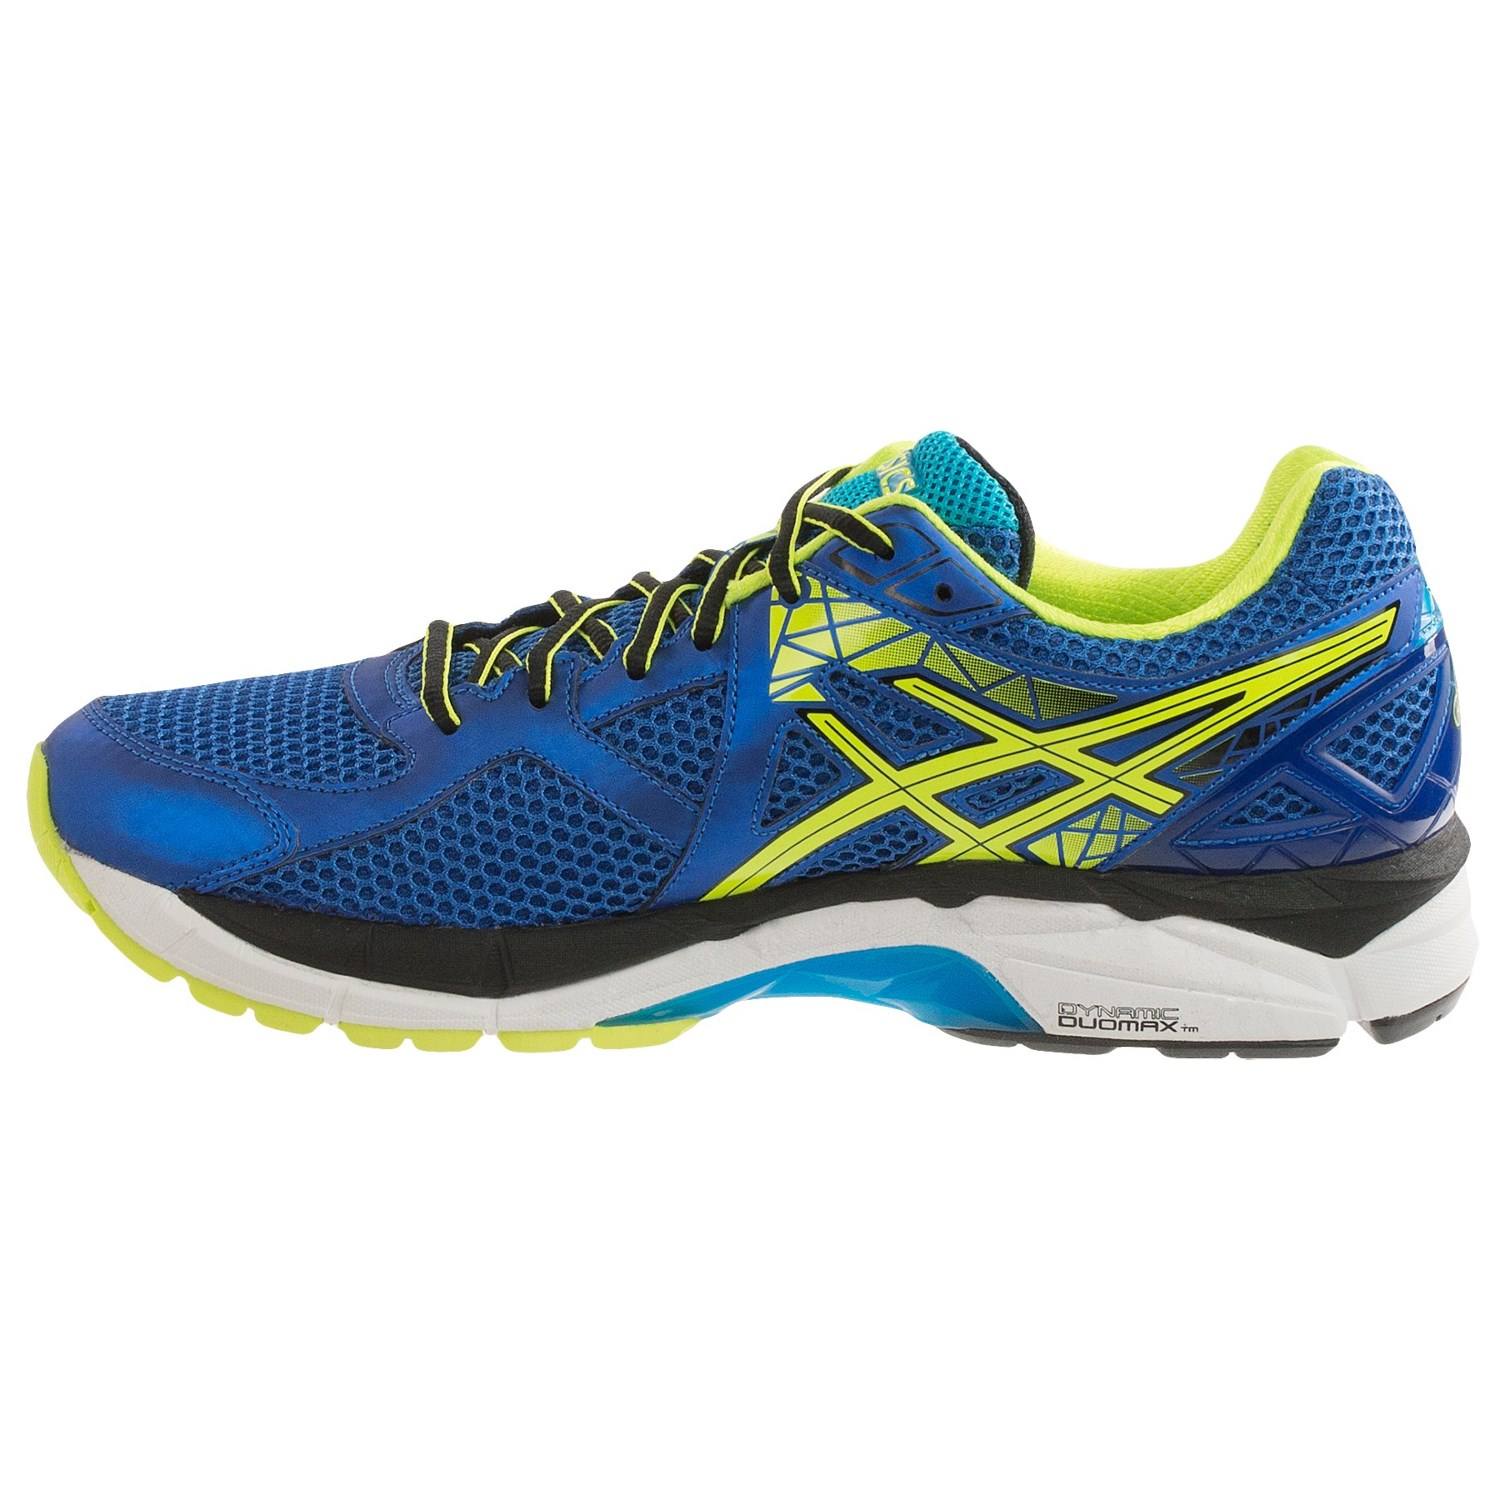 9140K5 ASICS GT 2000 3 Running Shoes For Men